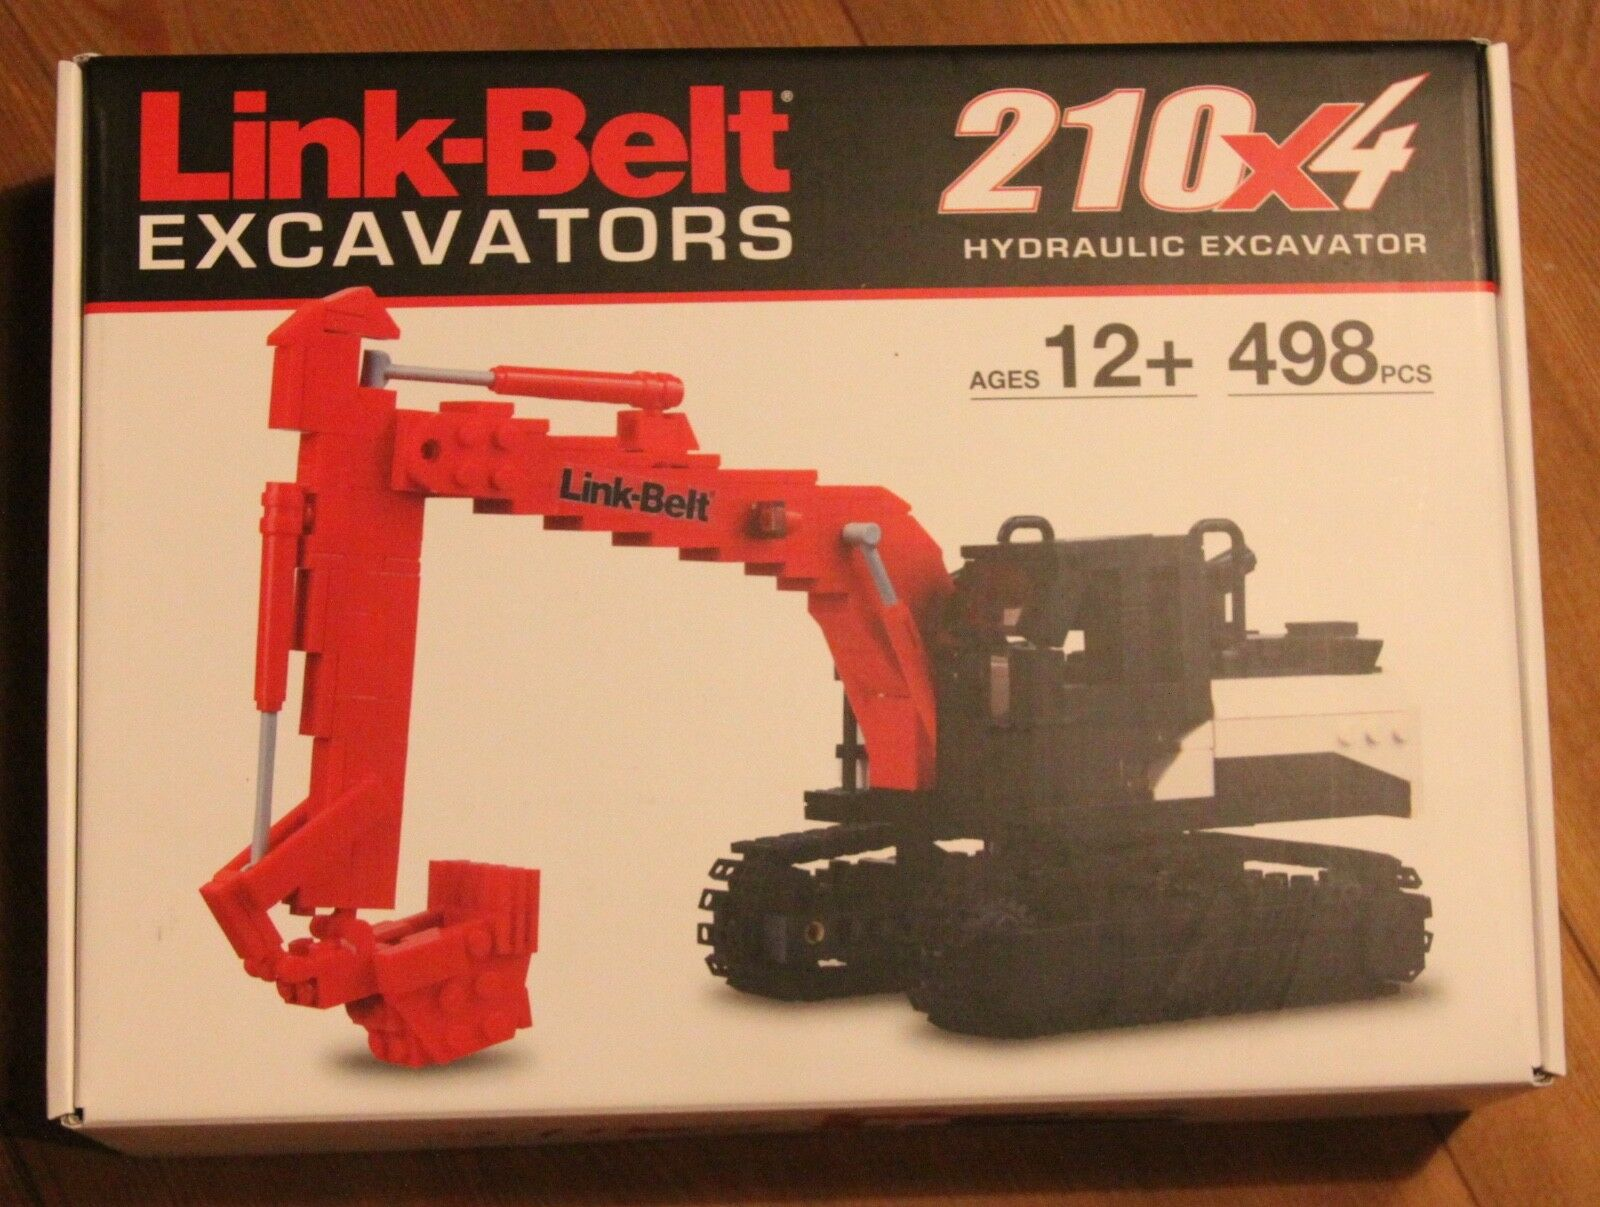 Lego link-Belt 210x4 excavators Certified Professional Limited Edition